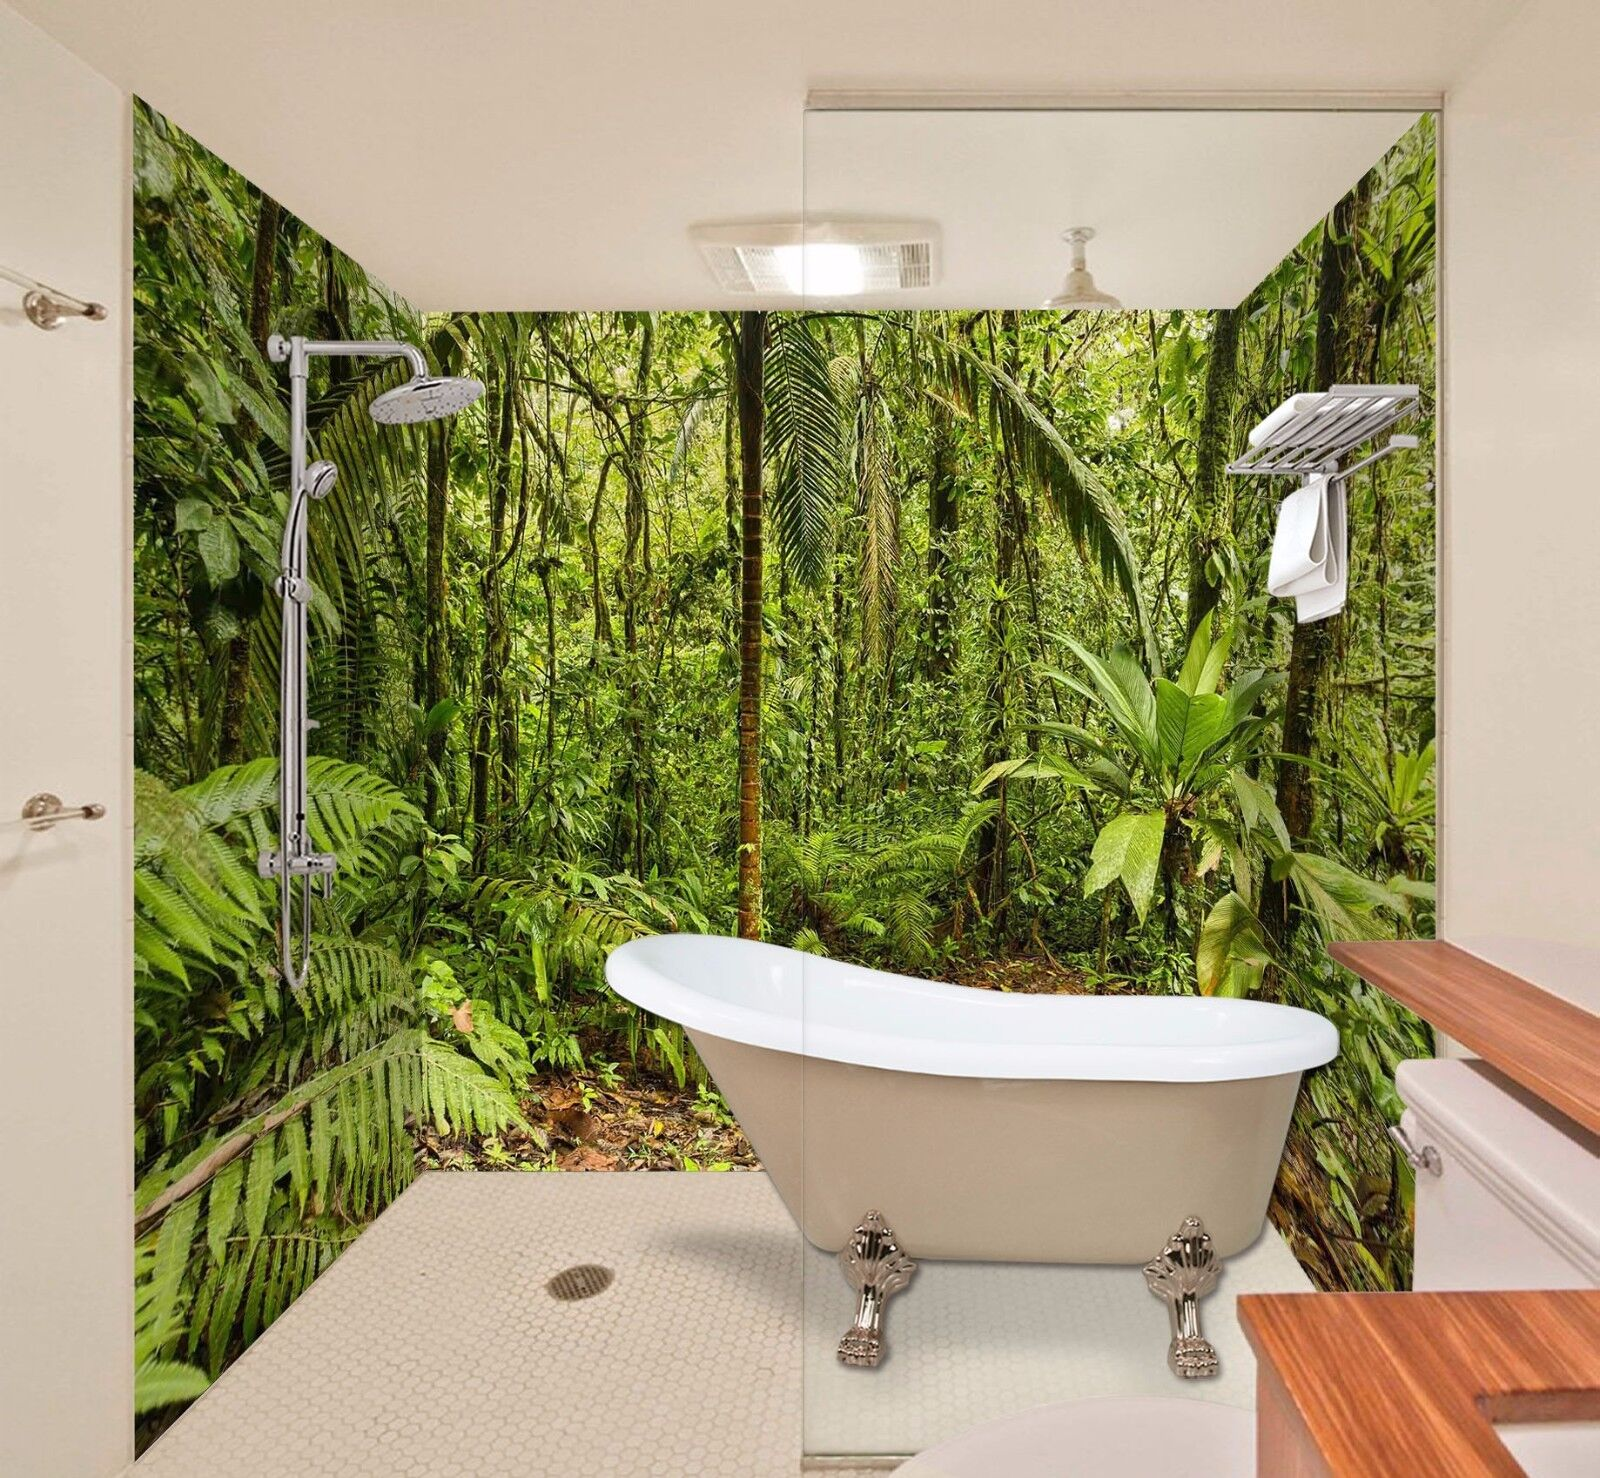 3D Jungle Tree 544 WallPaper Bathroom Print Decal Wall Deco AJ WALLPAPER AU